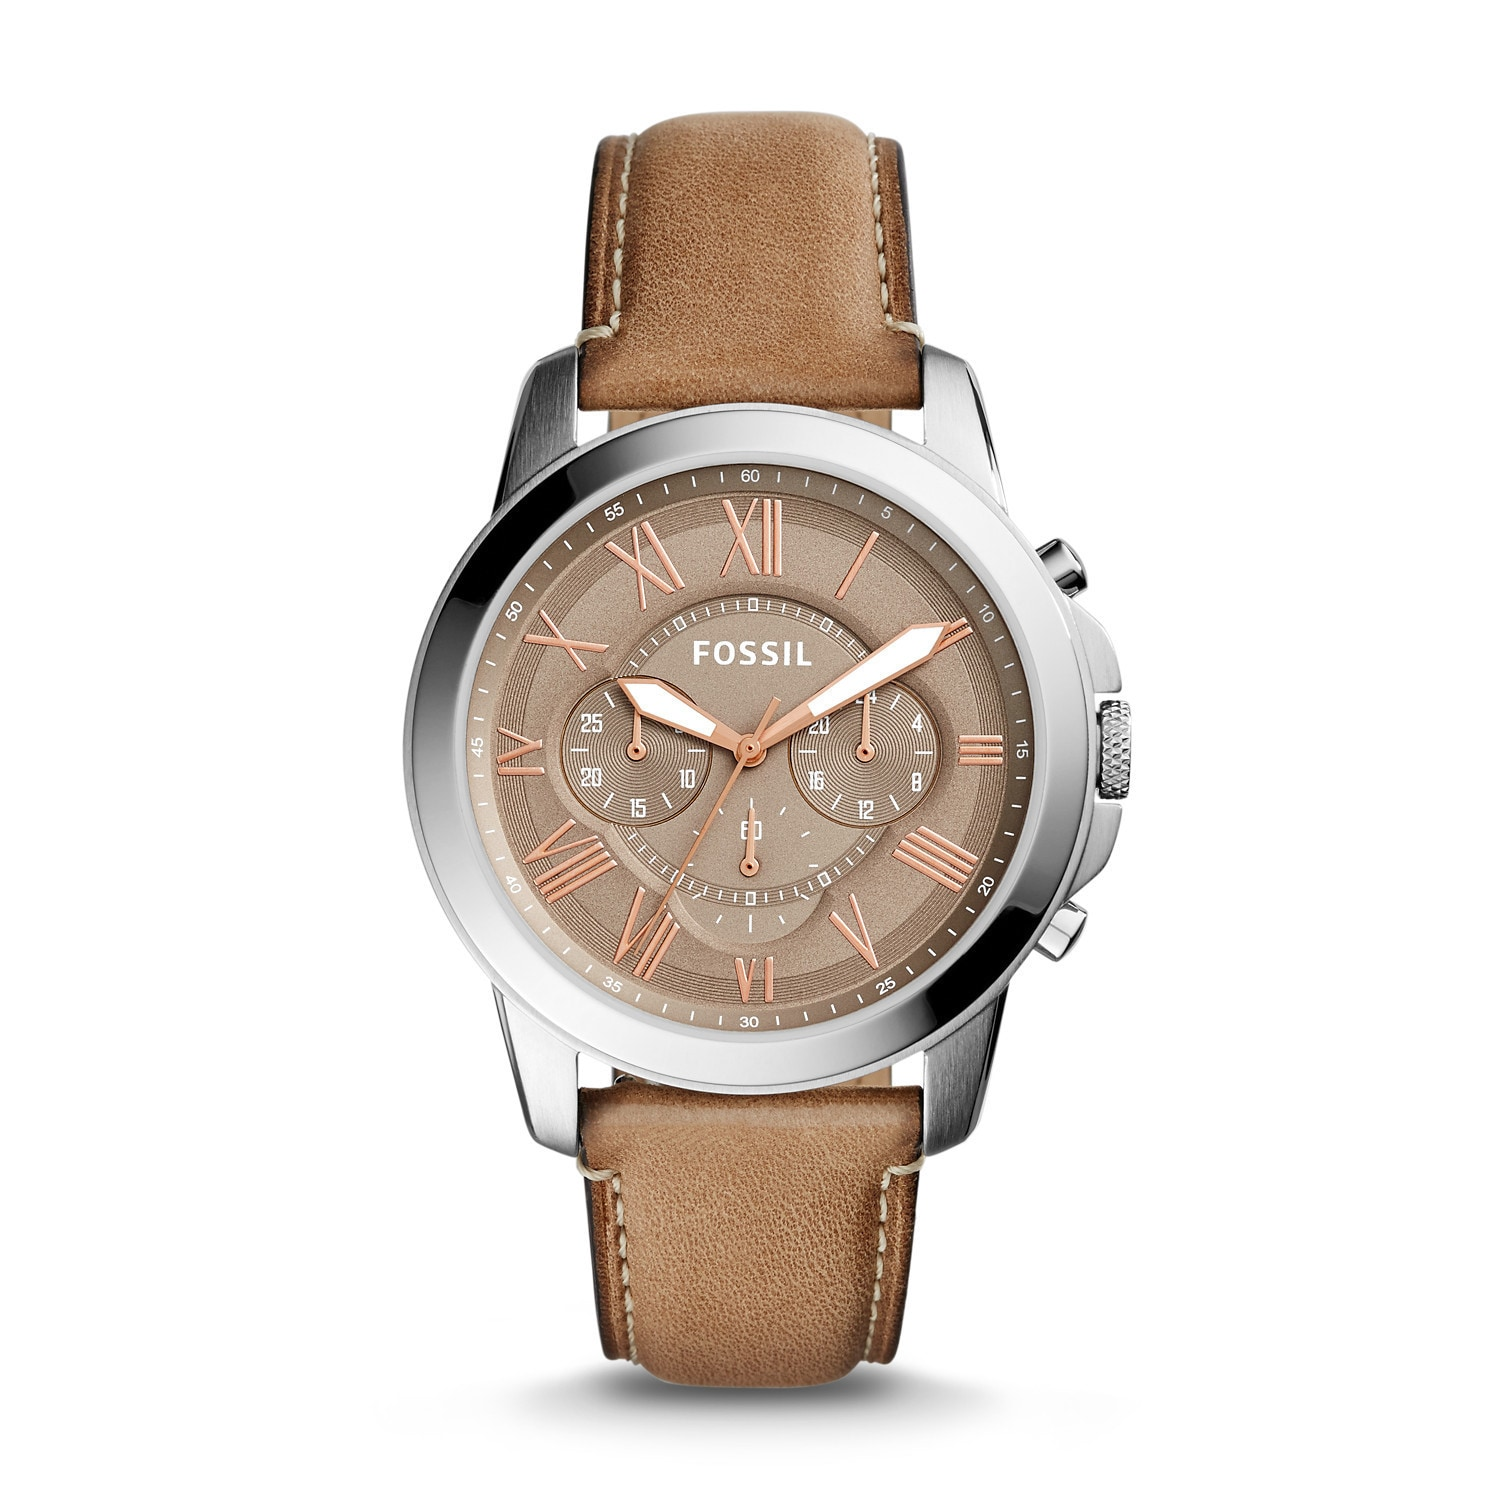 ad7db5dd8 Shop Fossil Men's Grant Chronograph Brown Dial Light Brown Leather Watch -  Free Shipping Today - Overstock - 12372430